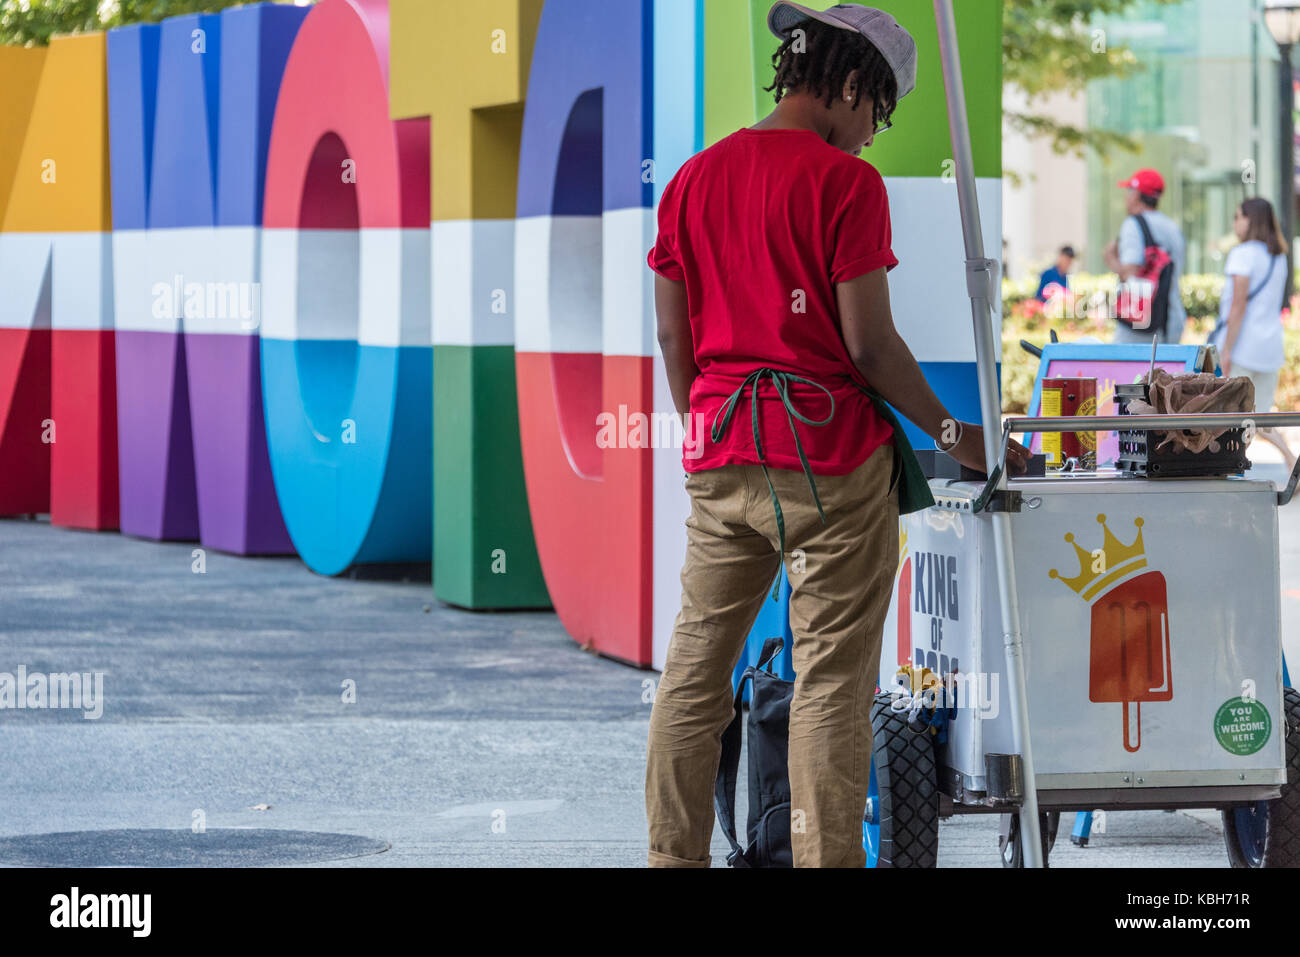 King of Pops popsicle vendor on Peachtree Street in Atlanta, Georgia next to colorful Midtown signage at Colony - Stock Image